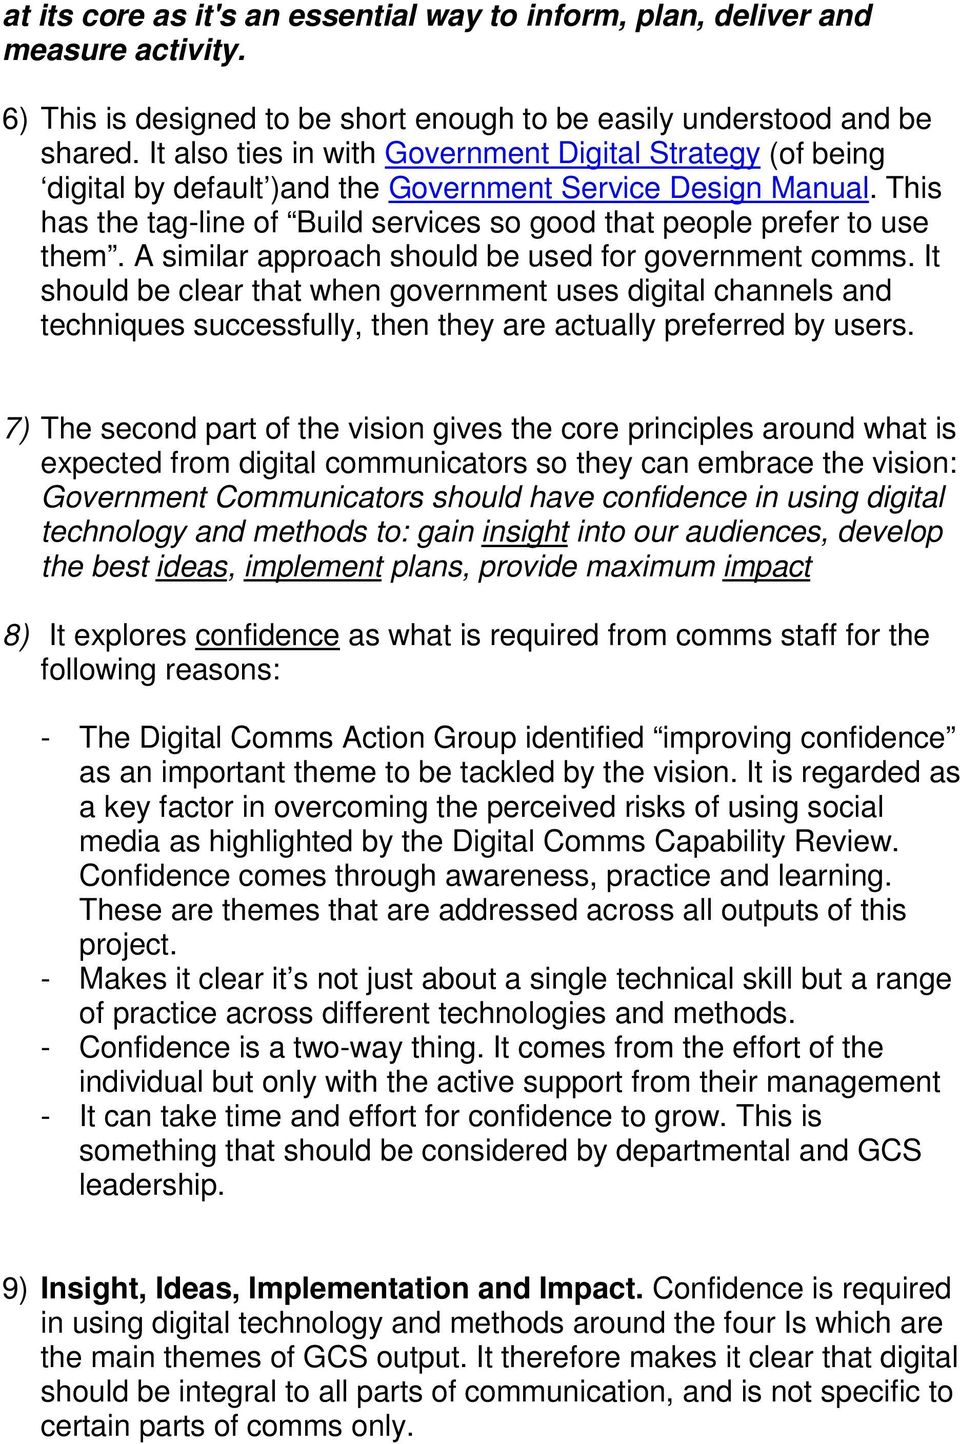 A similar approach should be used for government comms. It should be clear that when government uses digital channels and techniques successfully, then they are actually preferred by users.